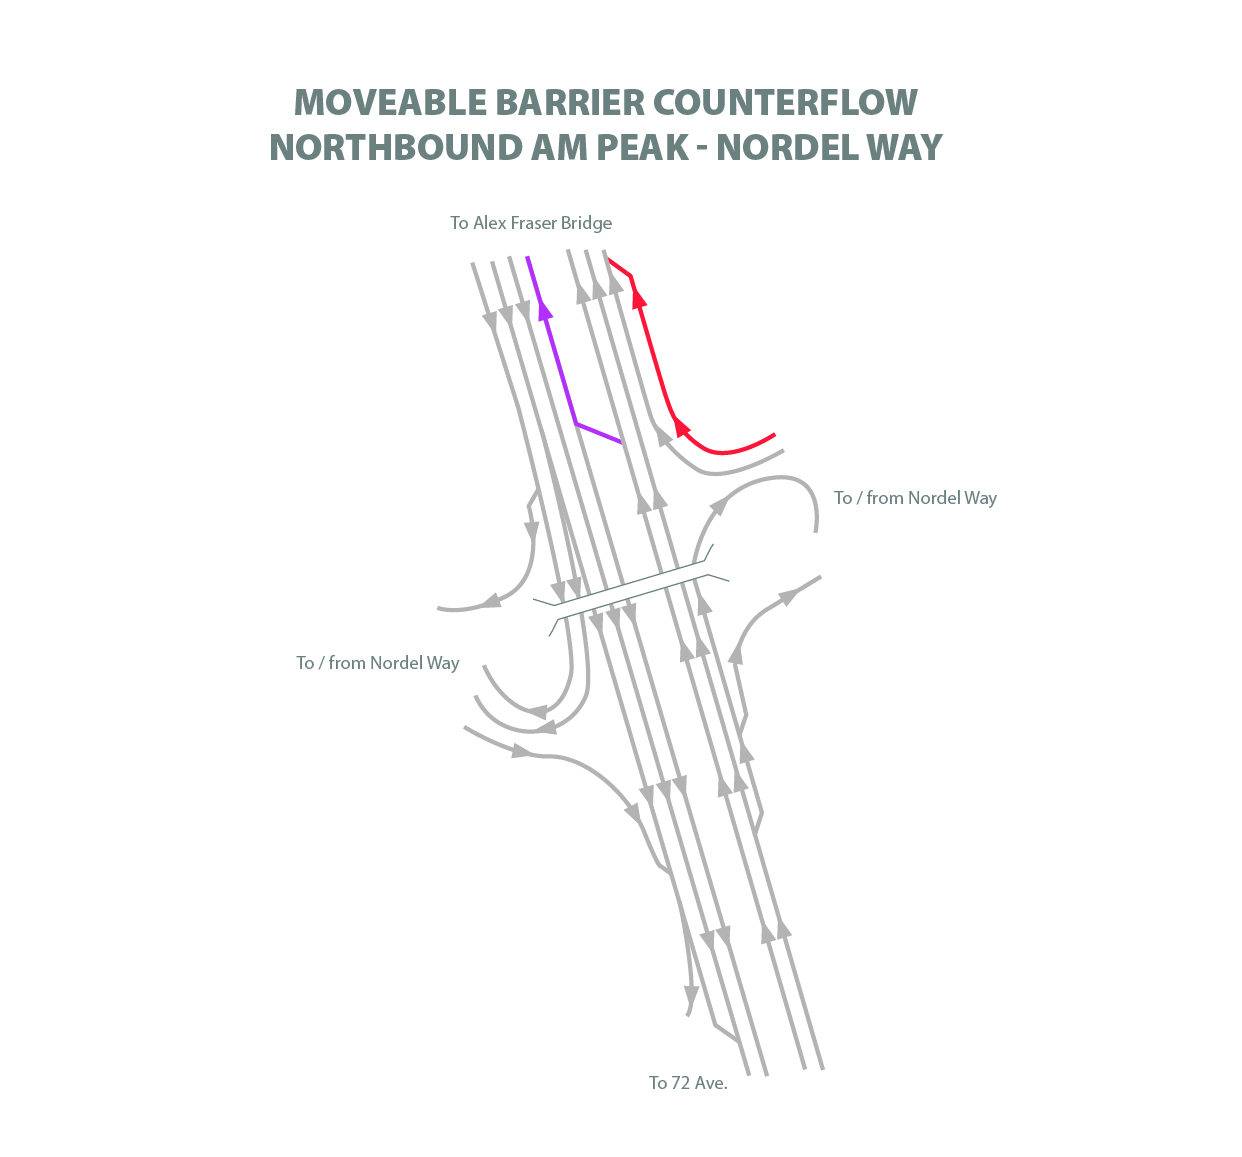 Moveable Barrier Counterflow Nortbound AM Peak at Nordel Way